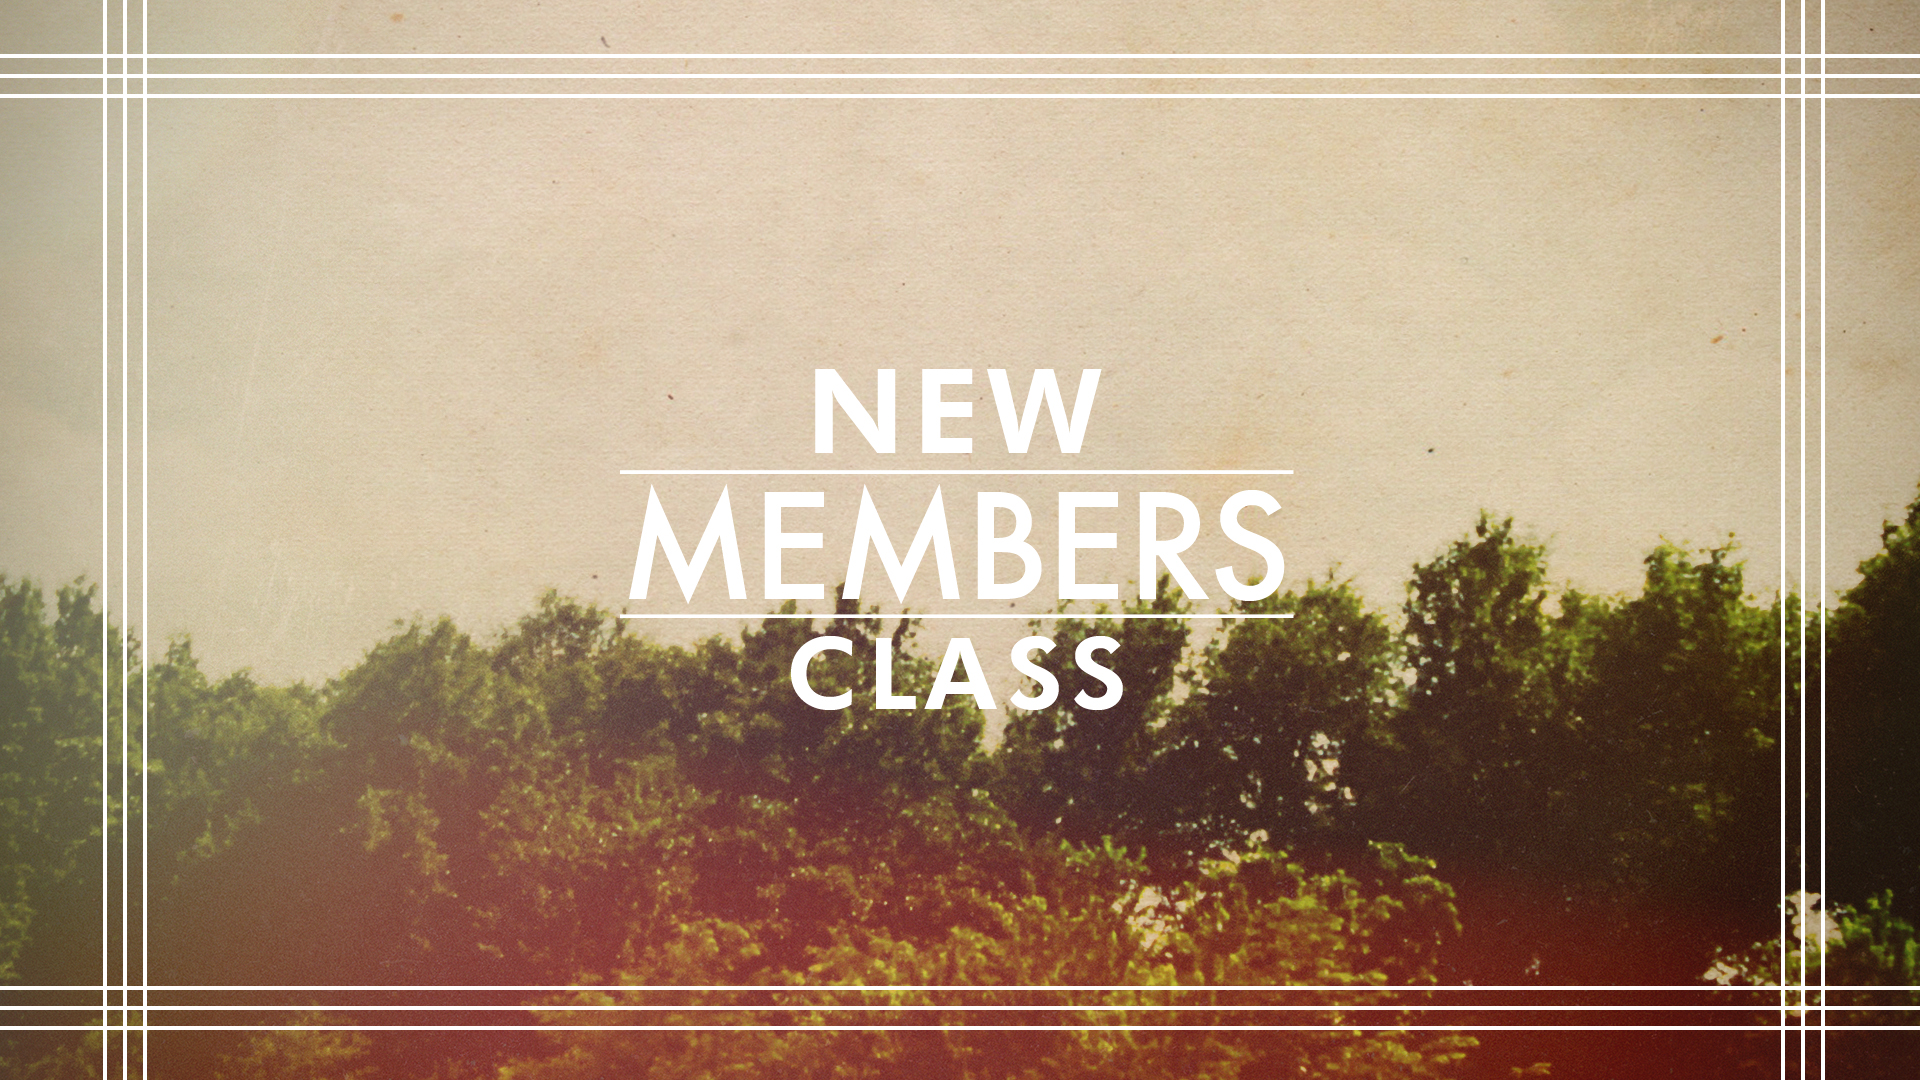 Our New Members class will run the first three Sundays of every month. In this class, designed for those who are interested in learning more about becoming a member at Grace Center, you'll learn about where we came from, who we are and where we're going. Plus, you'll have an opportunity to meet other people who are new to Grace Center. The class will meet in Room H at 10.45am starting July 7th. Register at gracecenter.us